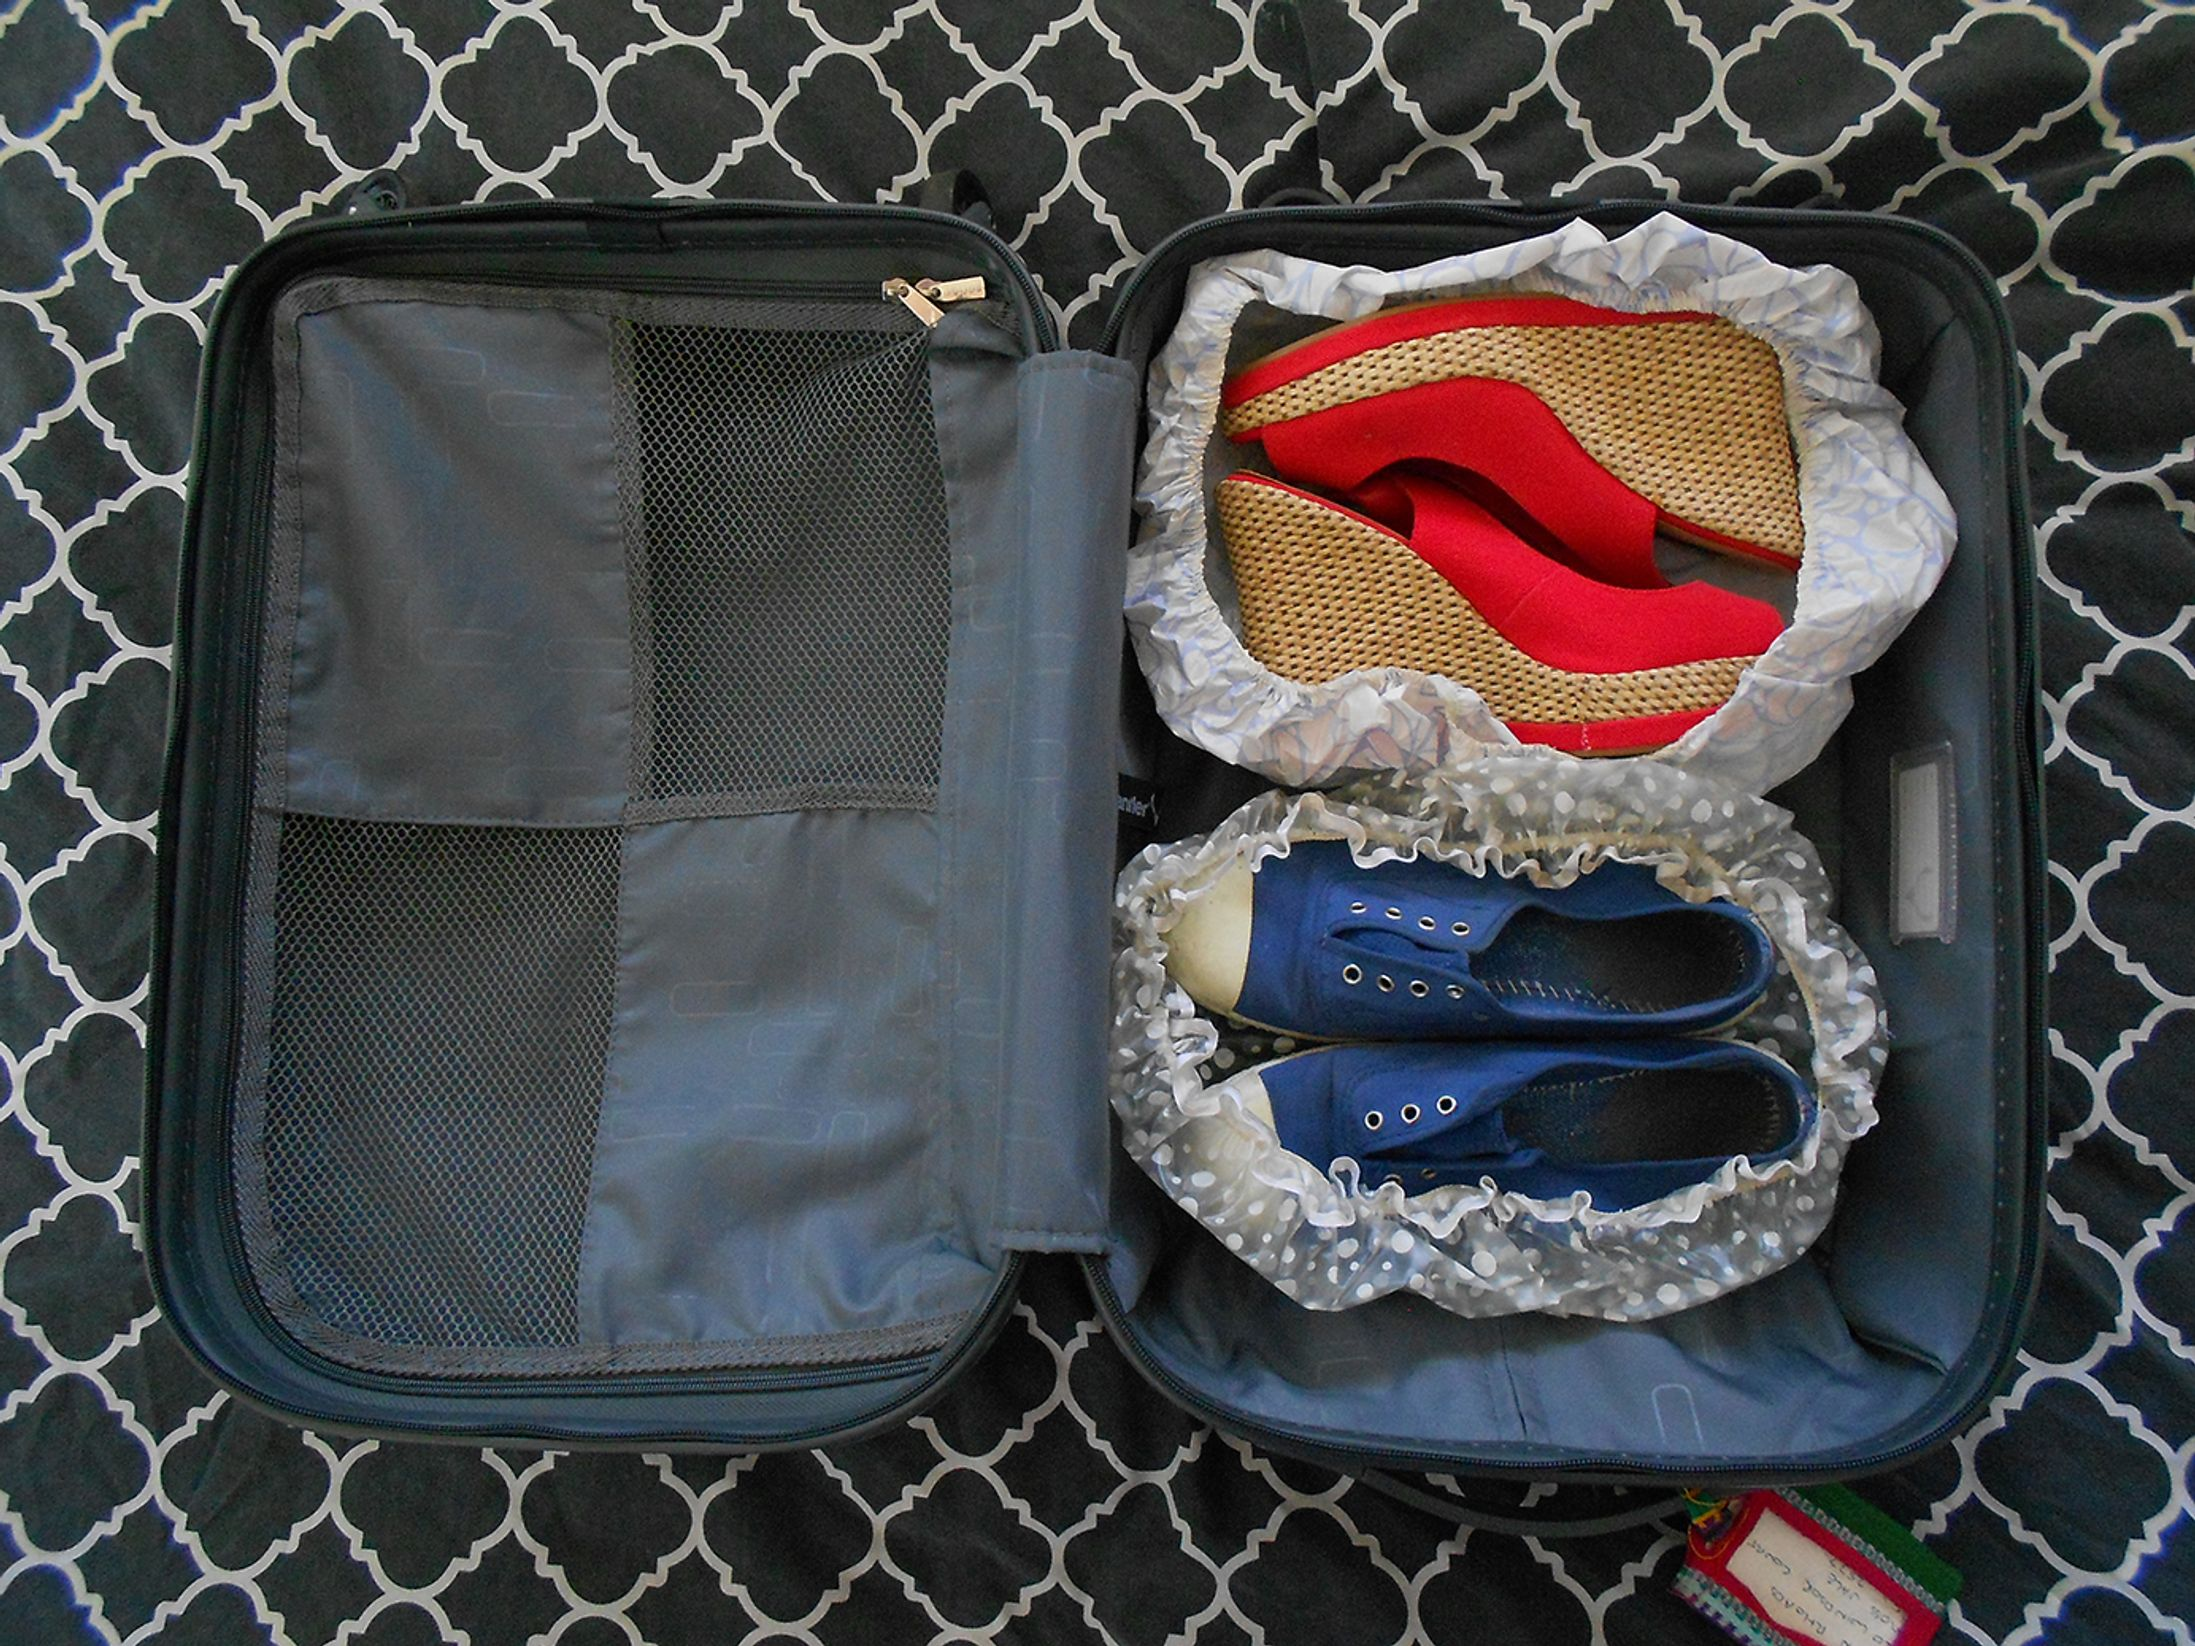 Shoes inside shower caps in a suitcase